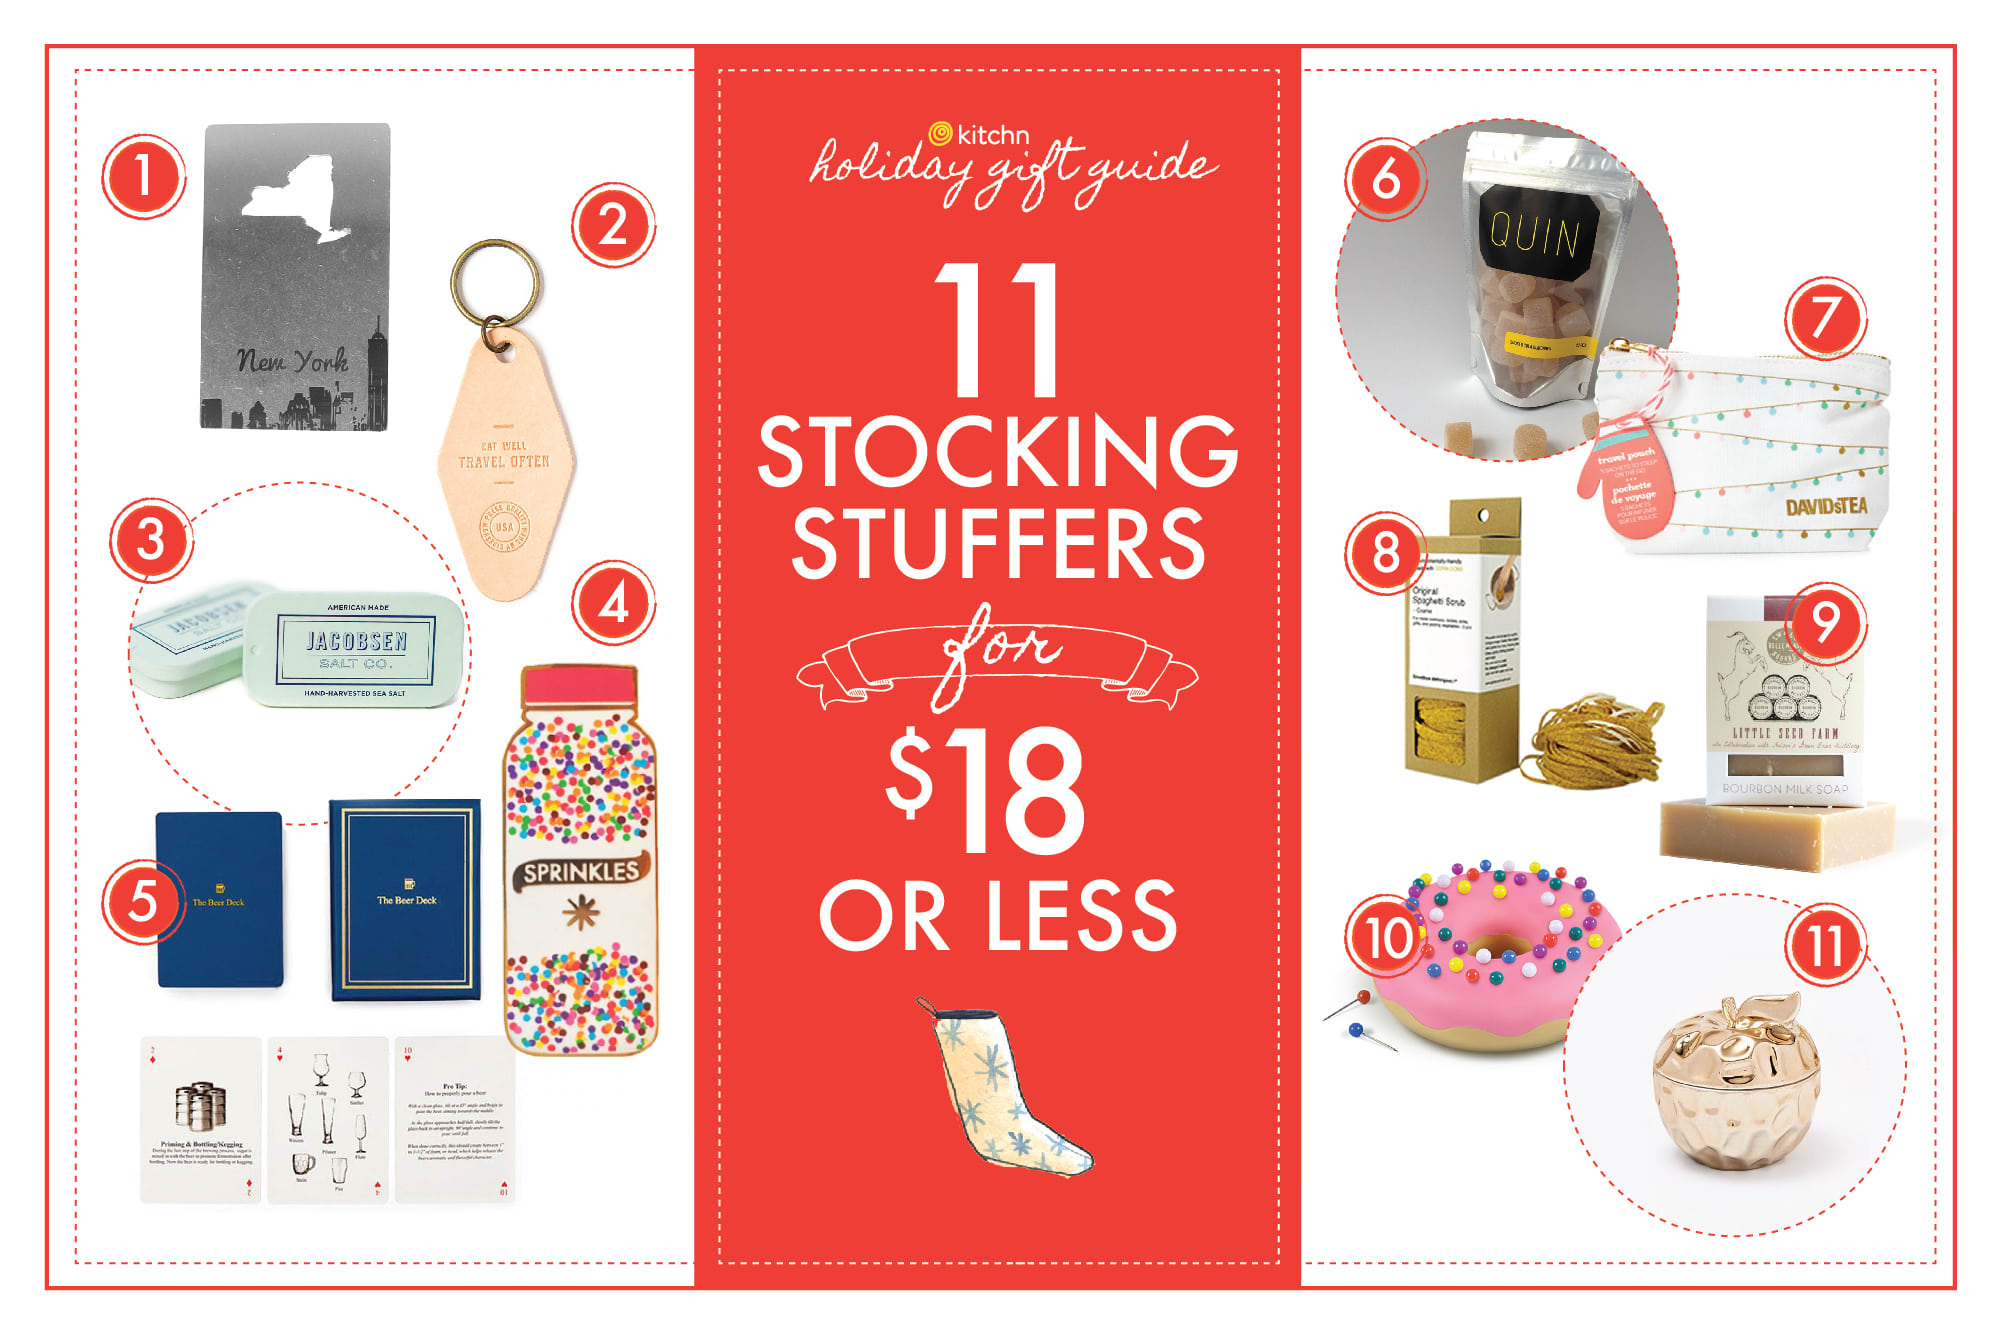 11 Stocking Stuffers for $18 or Less: gallery image 1